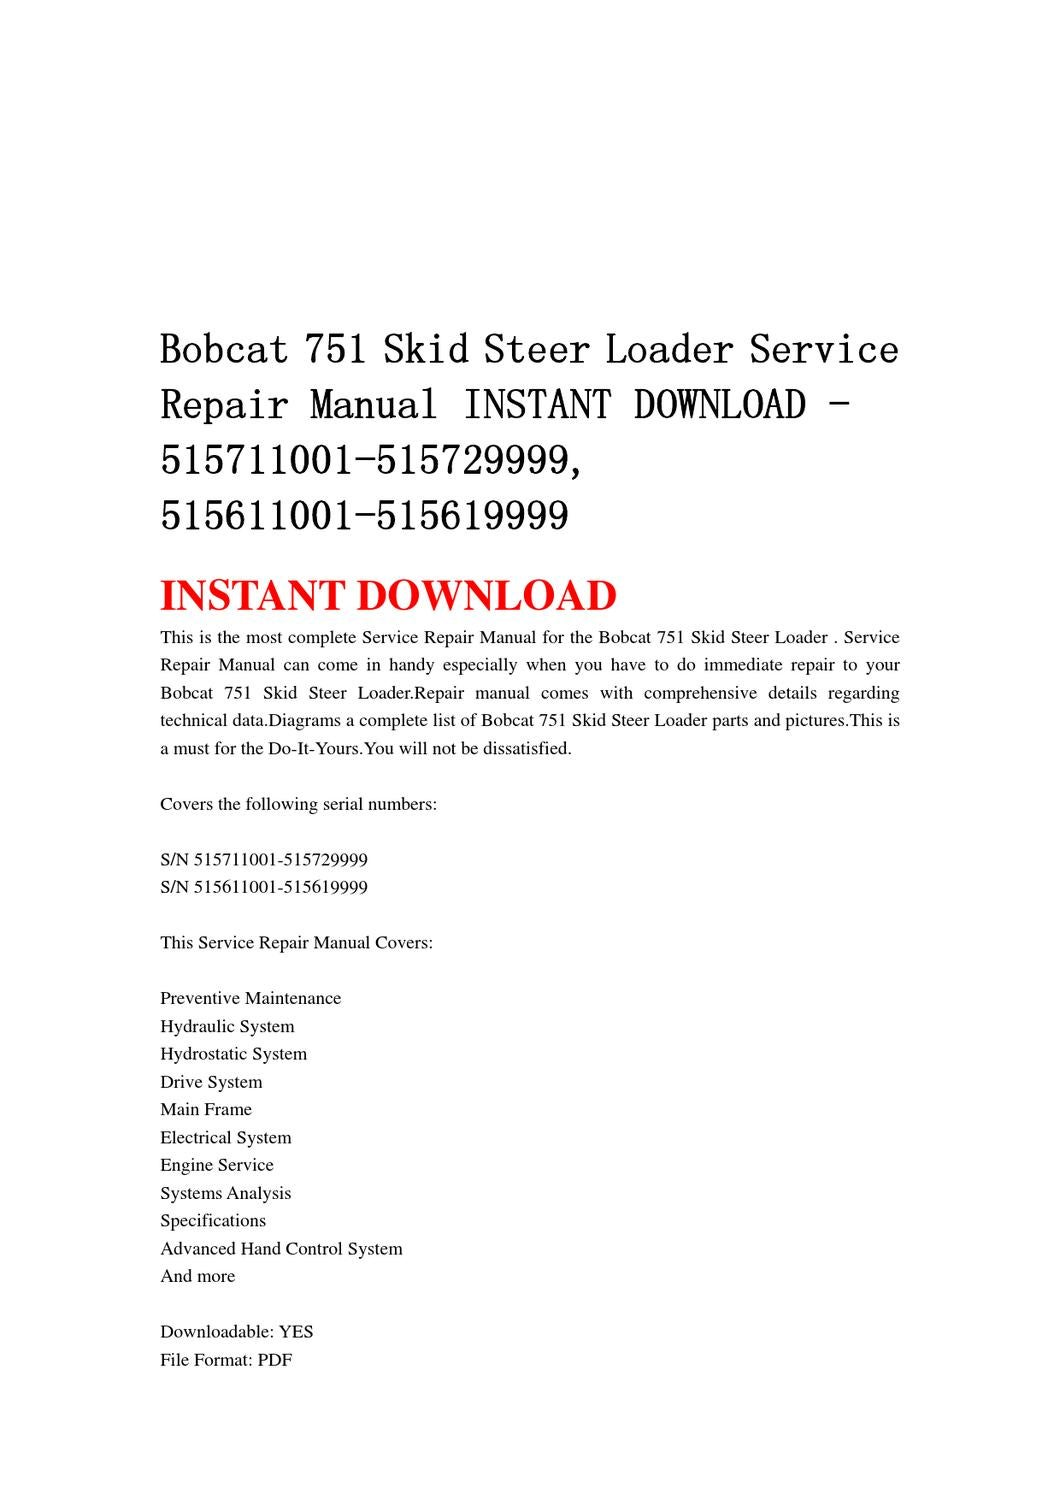 bobcat 751 skid steer loader service repair manual instant download -  515711001-515729999, 515611001 by yu jiew - issuu